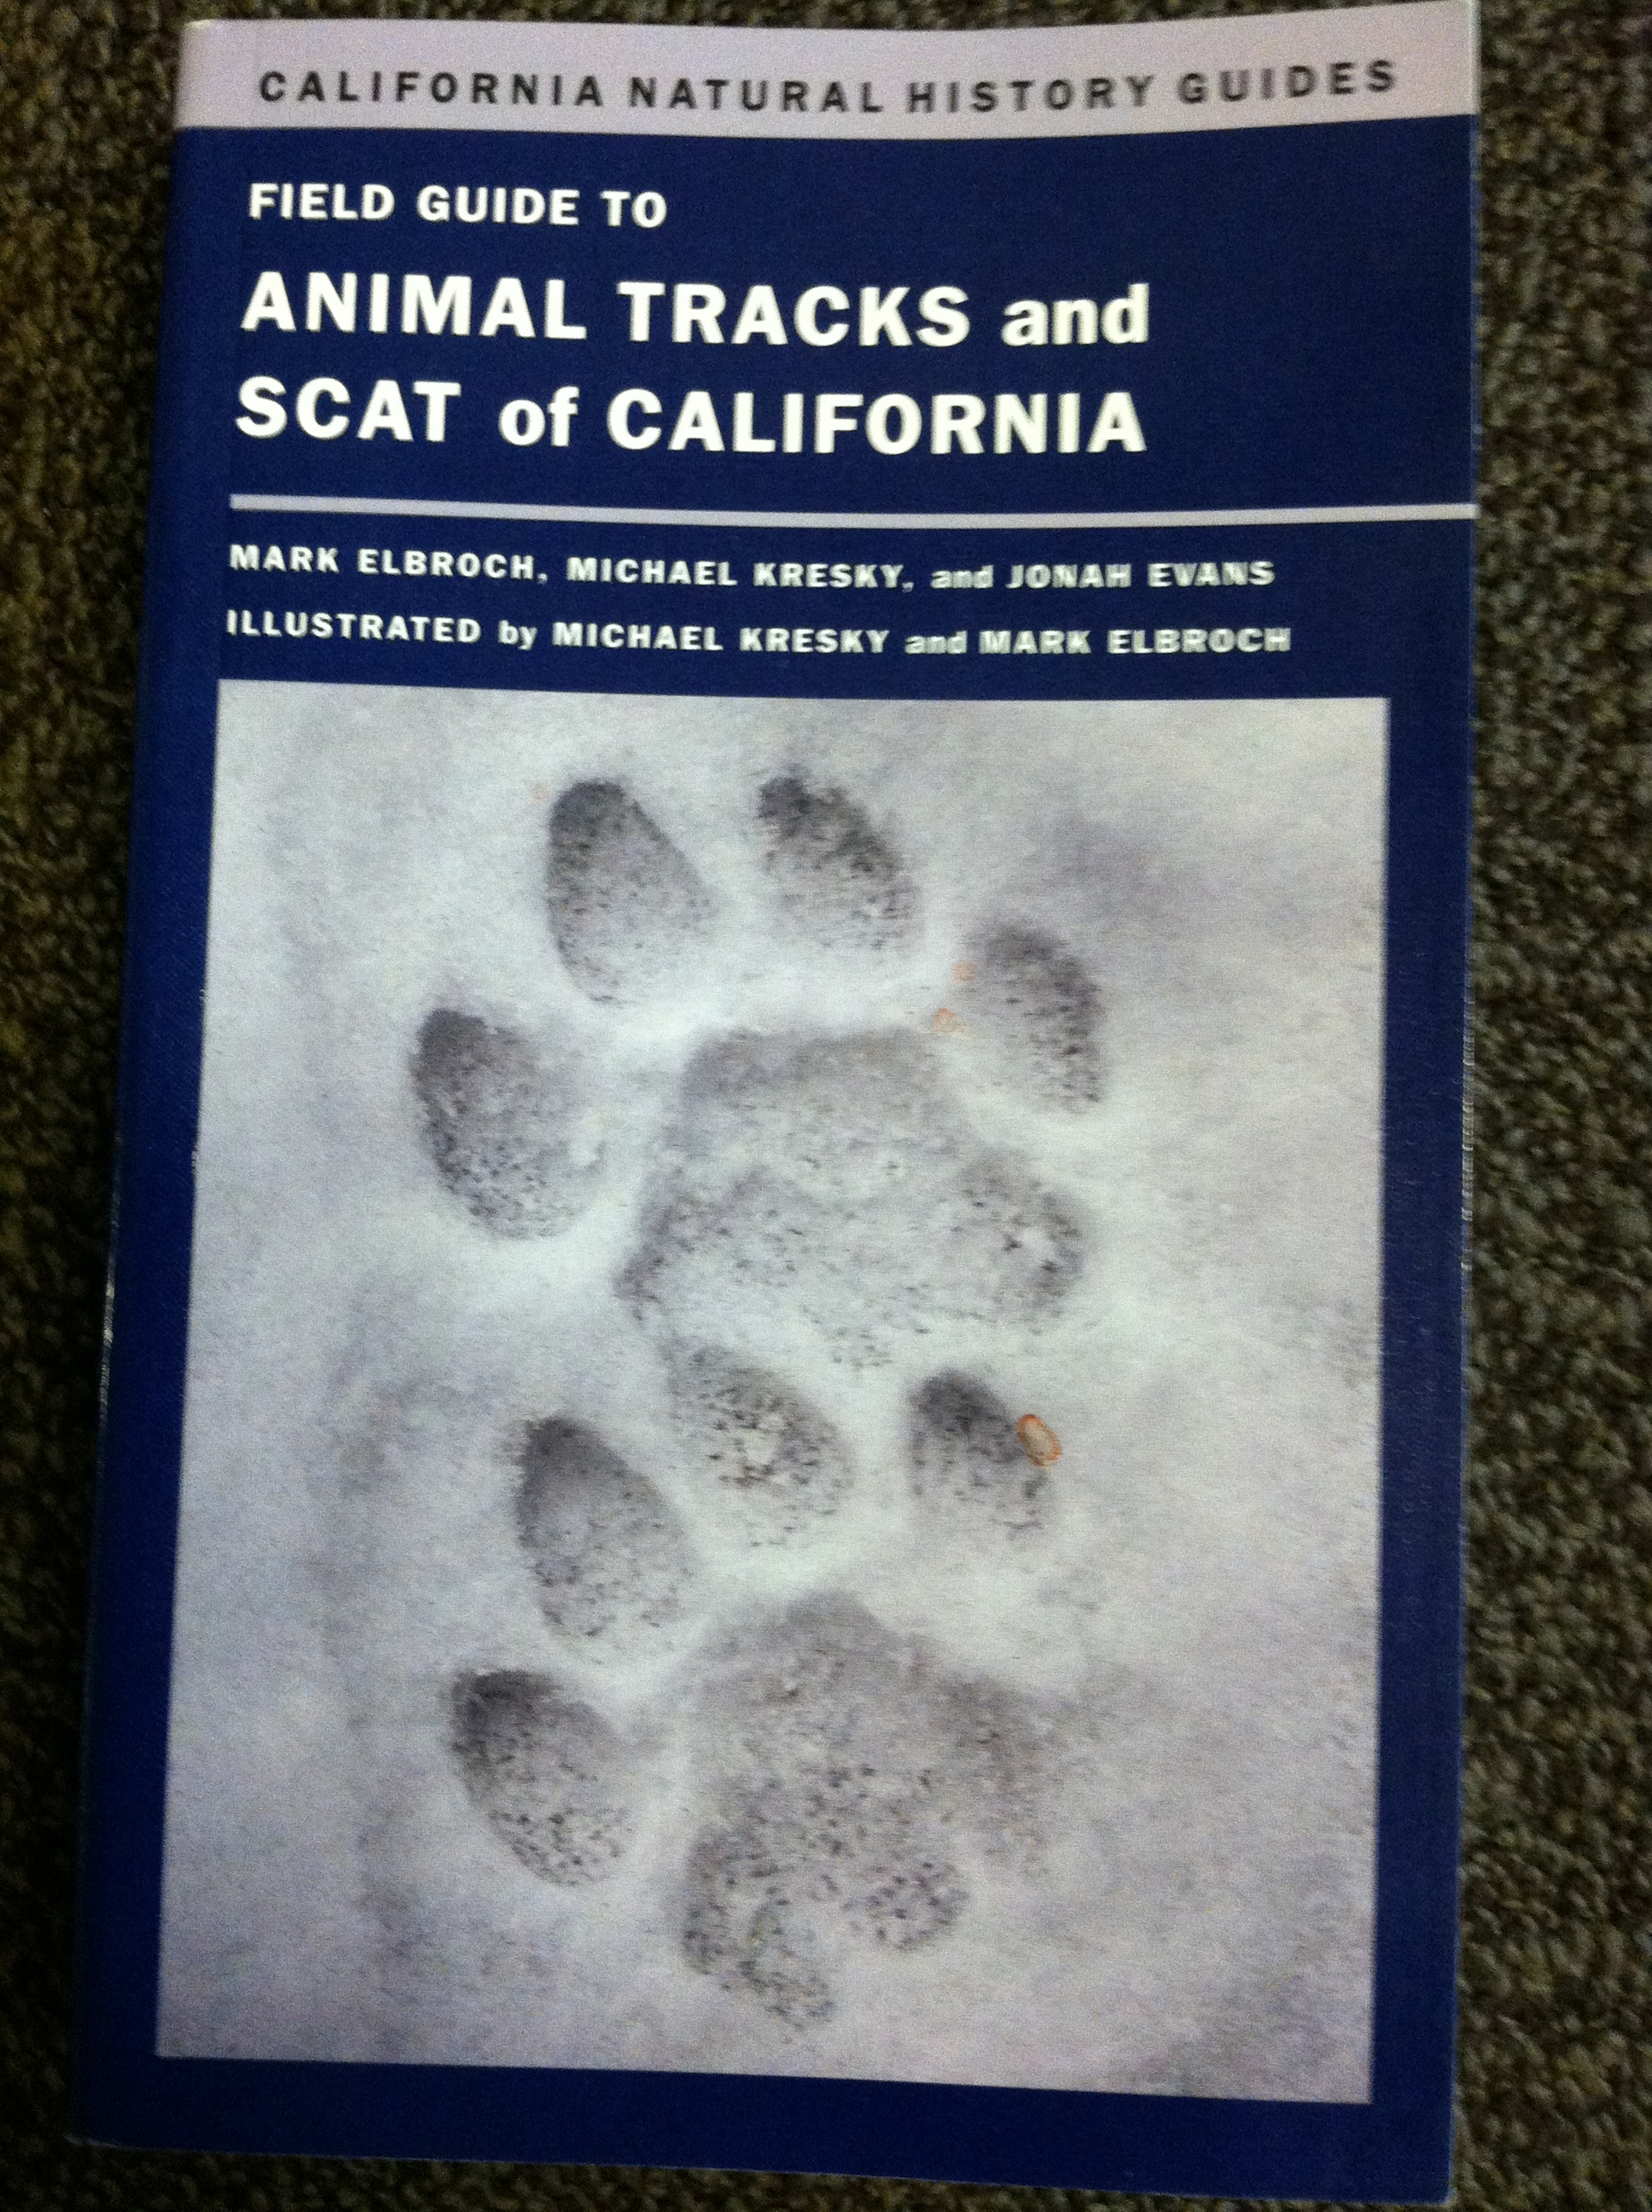 Animal Tracks and Scat of California by Mark Elbroch.